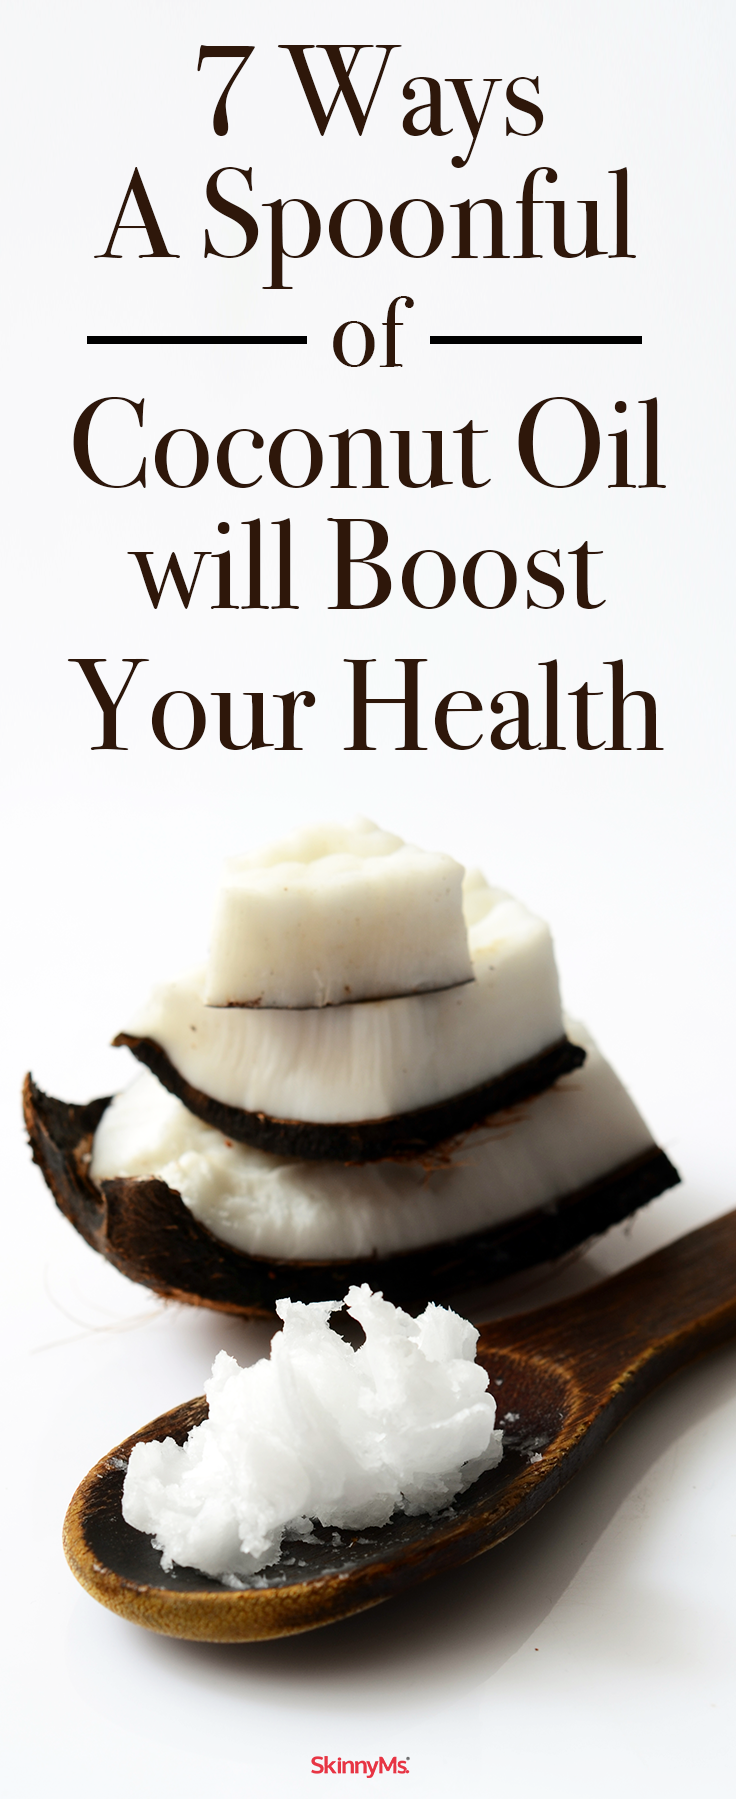 7 Ways a Spoonful of Coconut Oil will Boost your Health